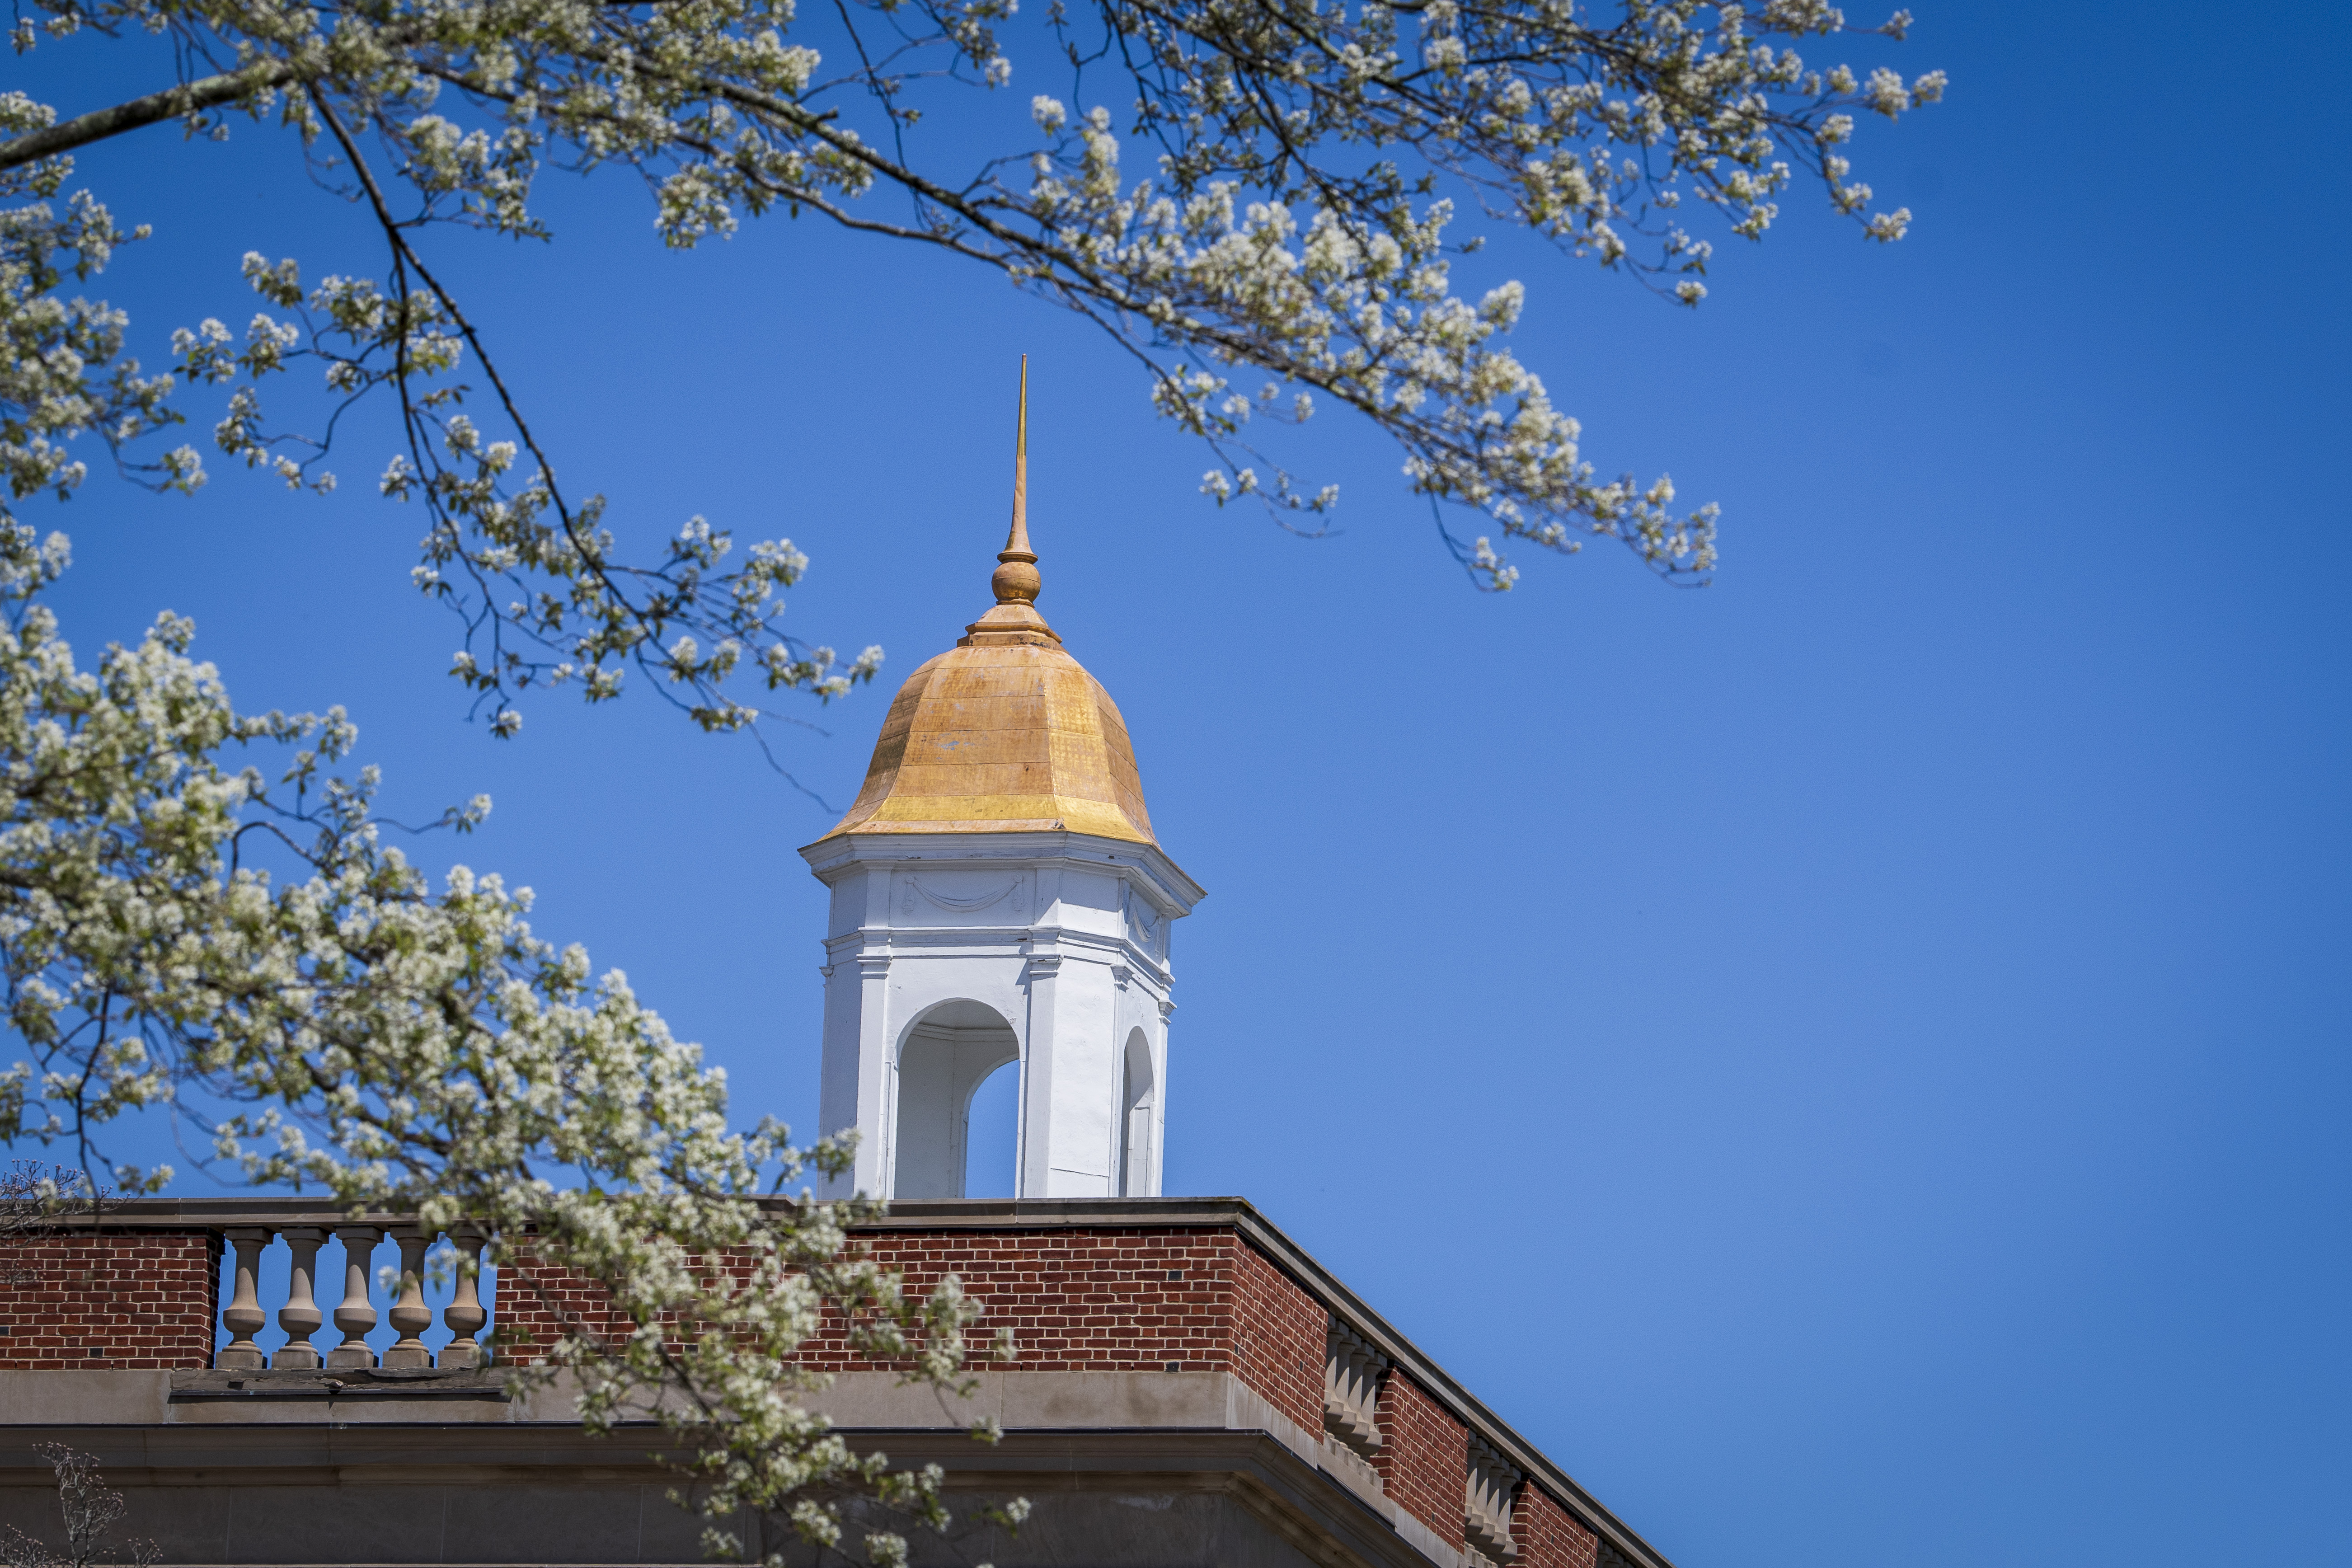 The golden cupola of the Wilbur Cross building on a spring day.